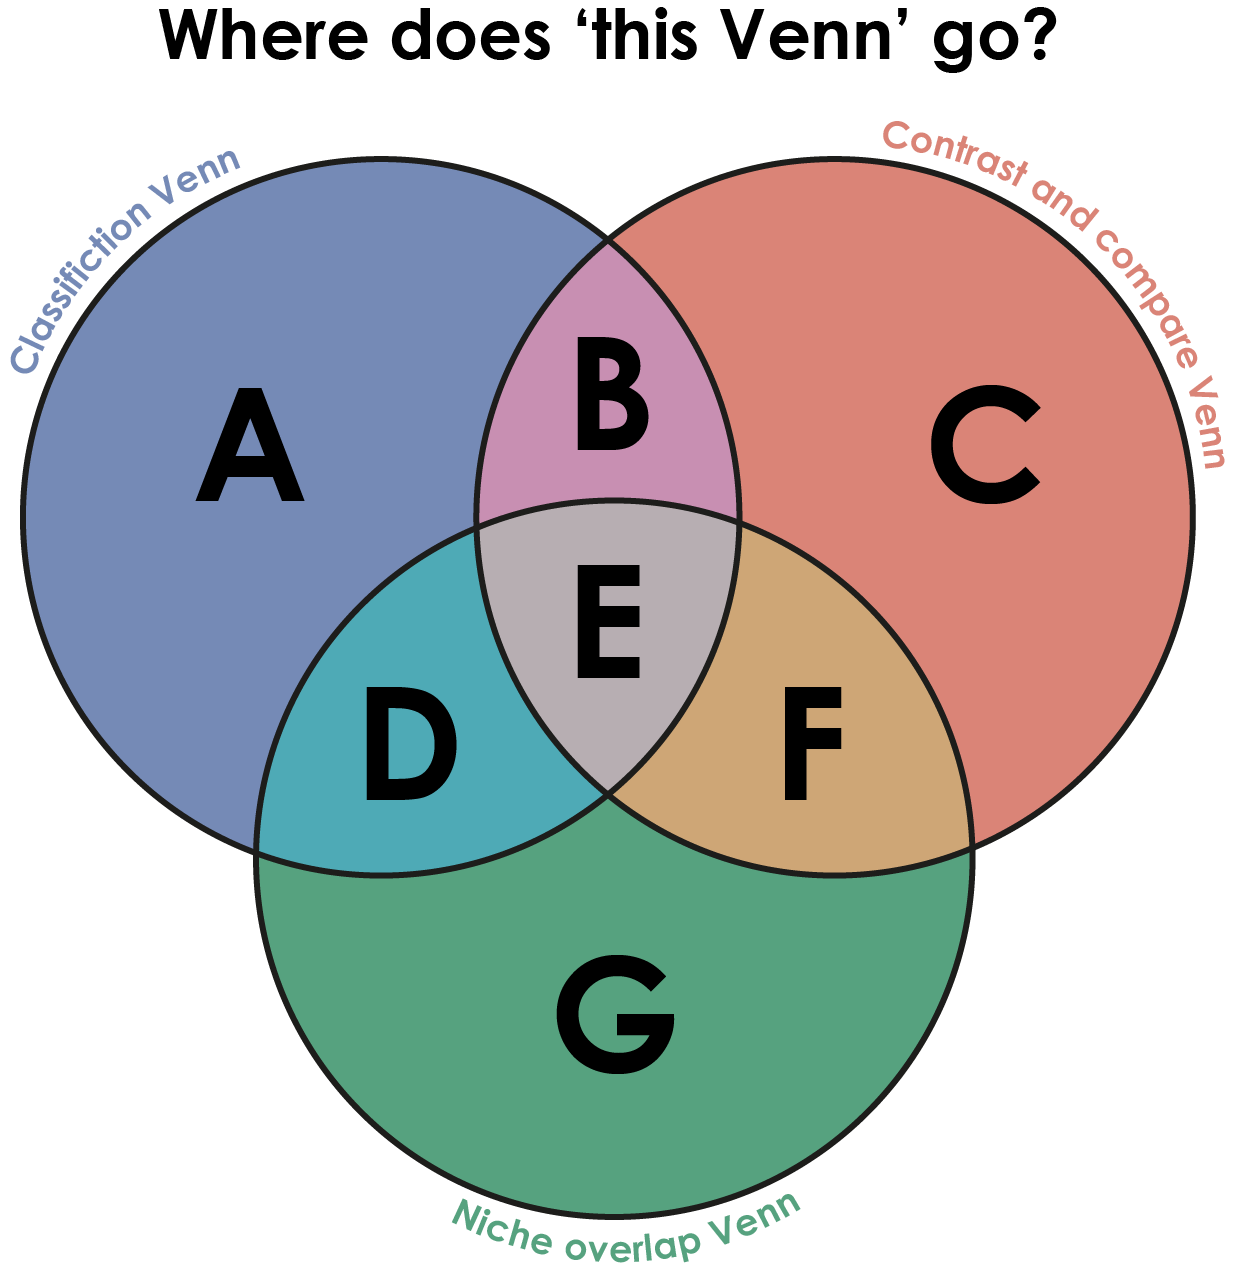 Where does this venn go?